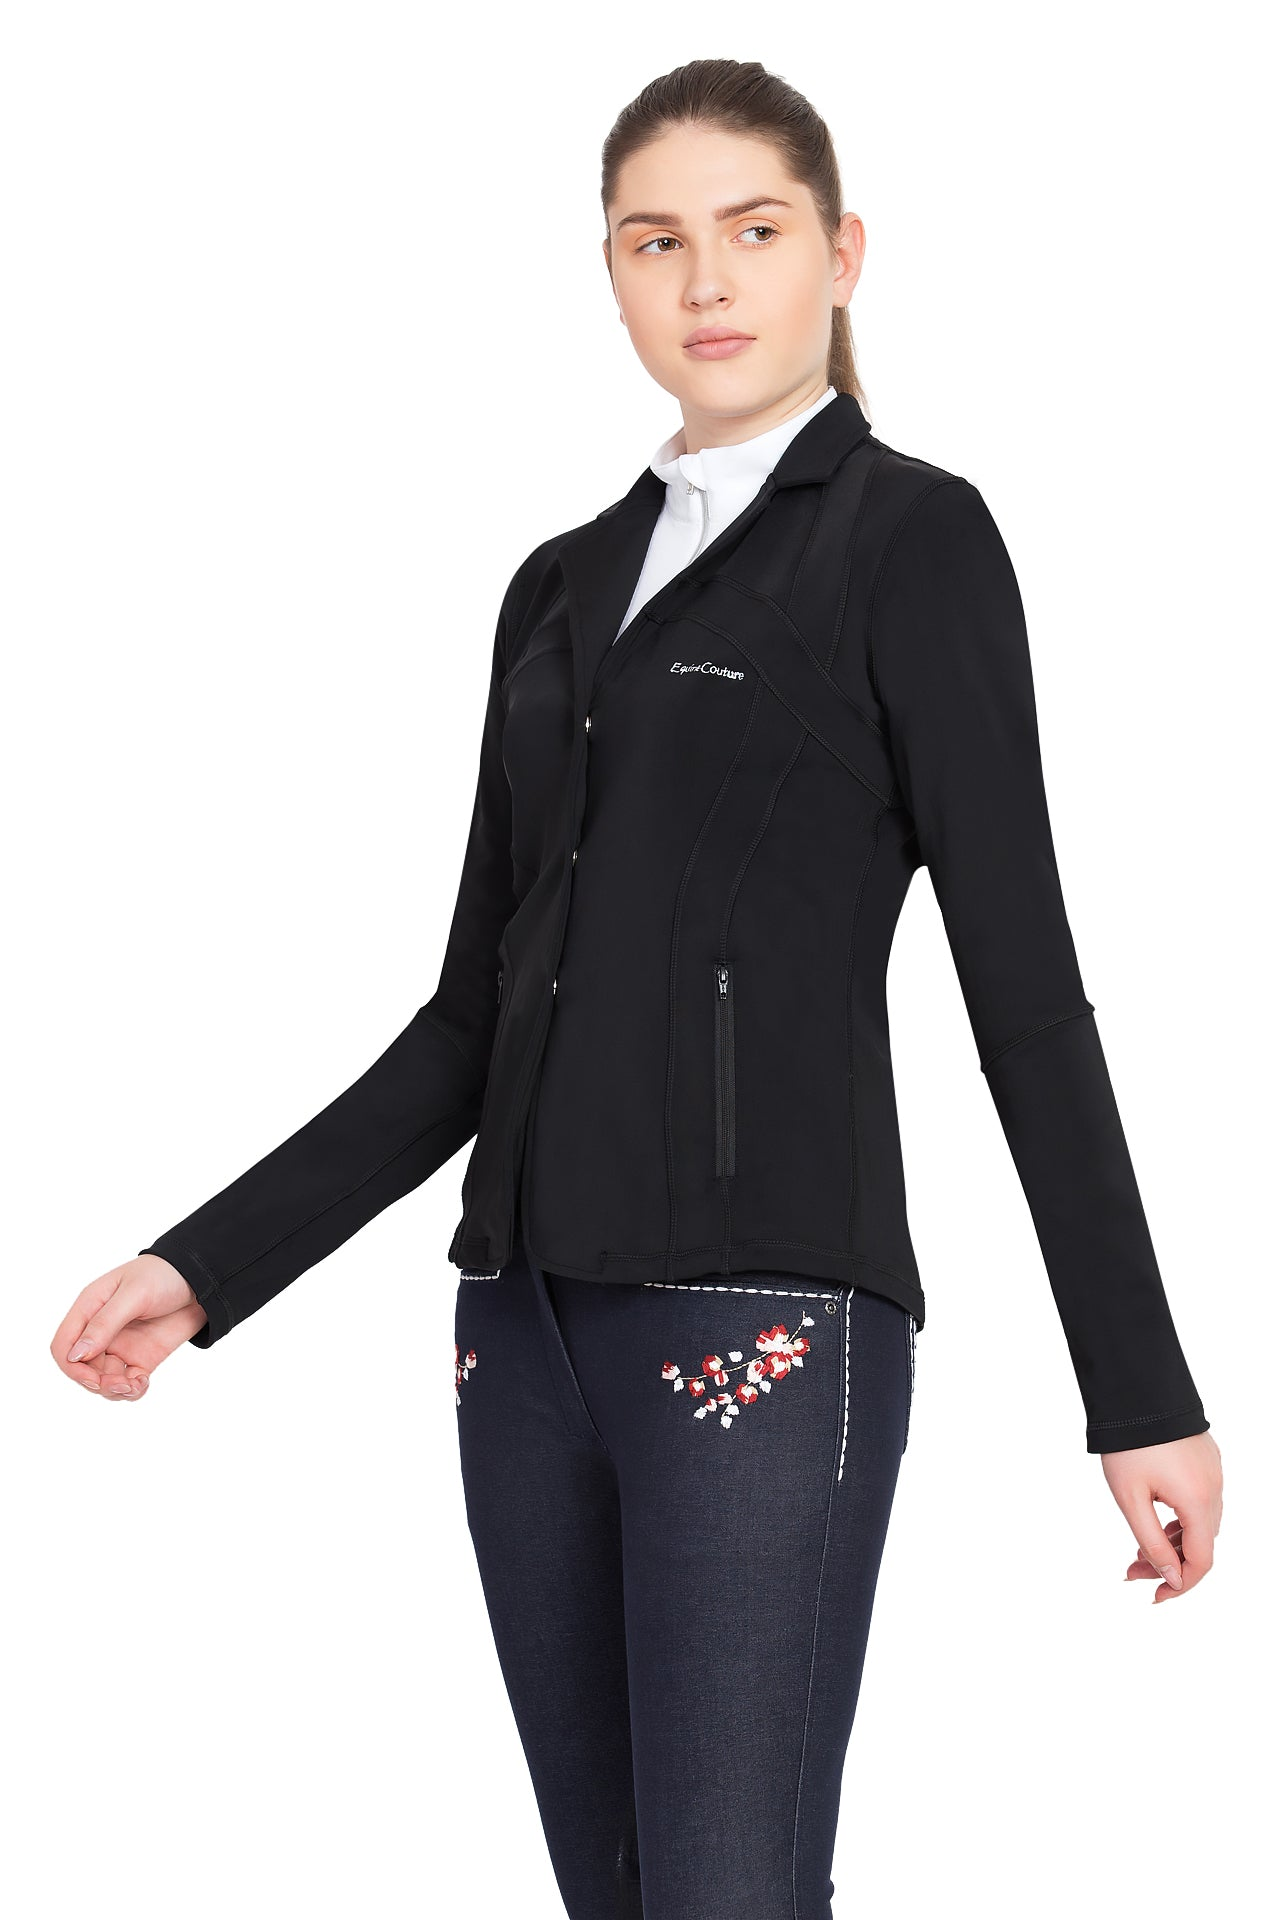 Equine Couture Lacey Ultra Light Show Coat - Breeches.com